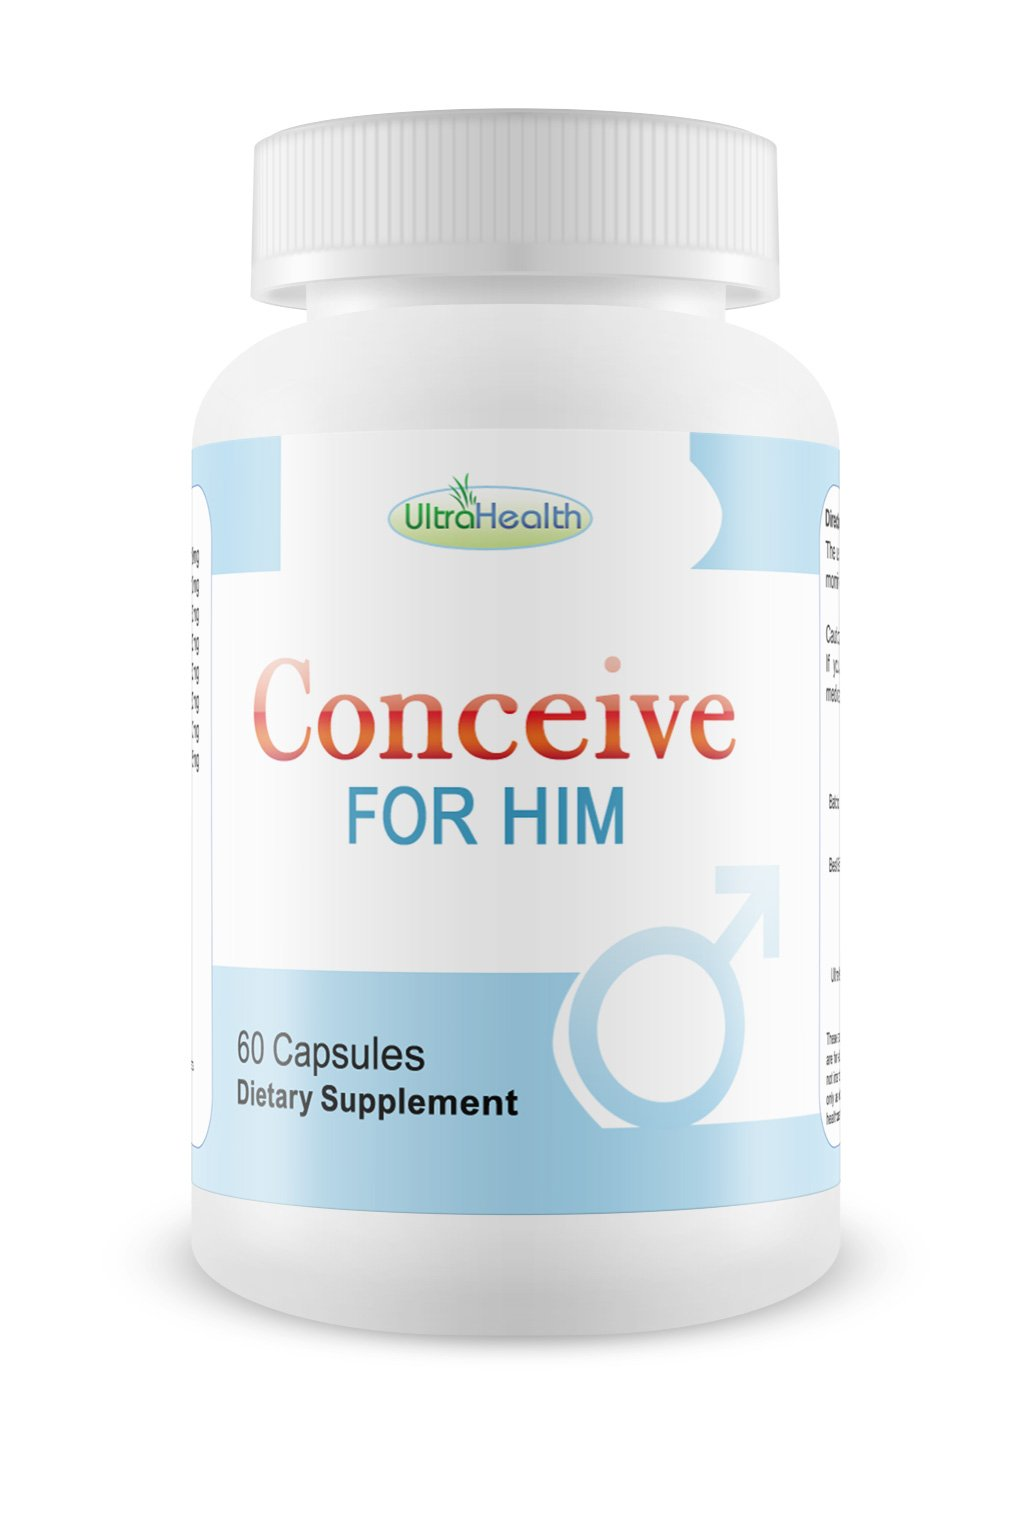 Conceive for Him - Male Fertility Supplement, Get PREGNANT, Conceive a Baby, Increase FERTILITY